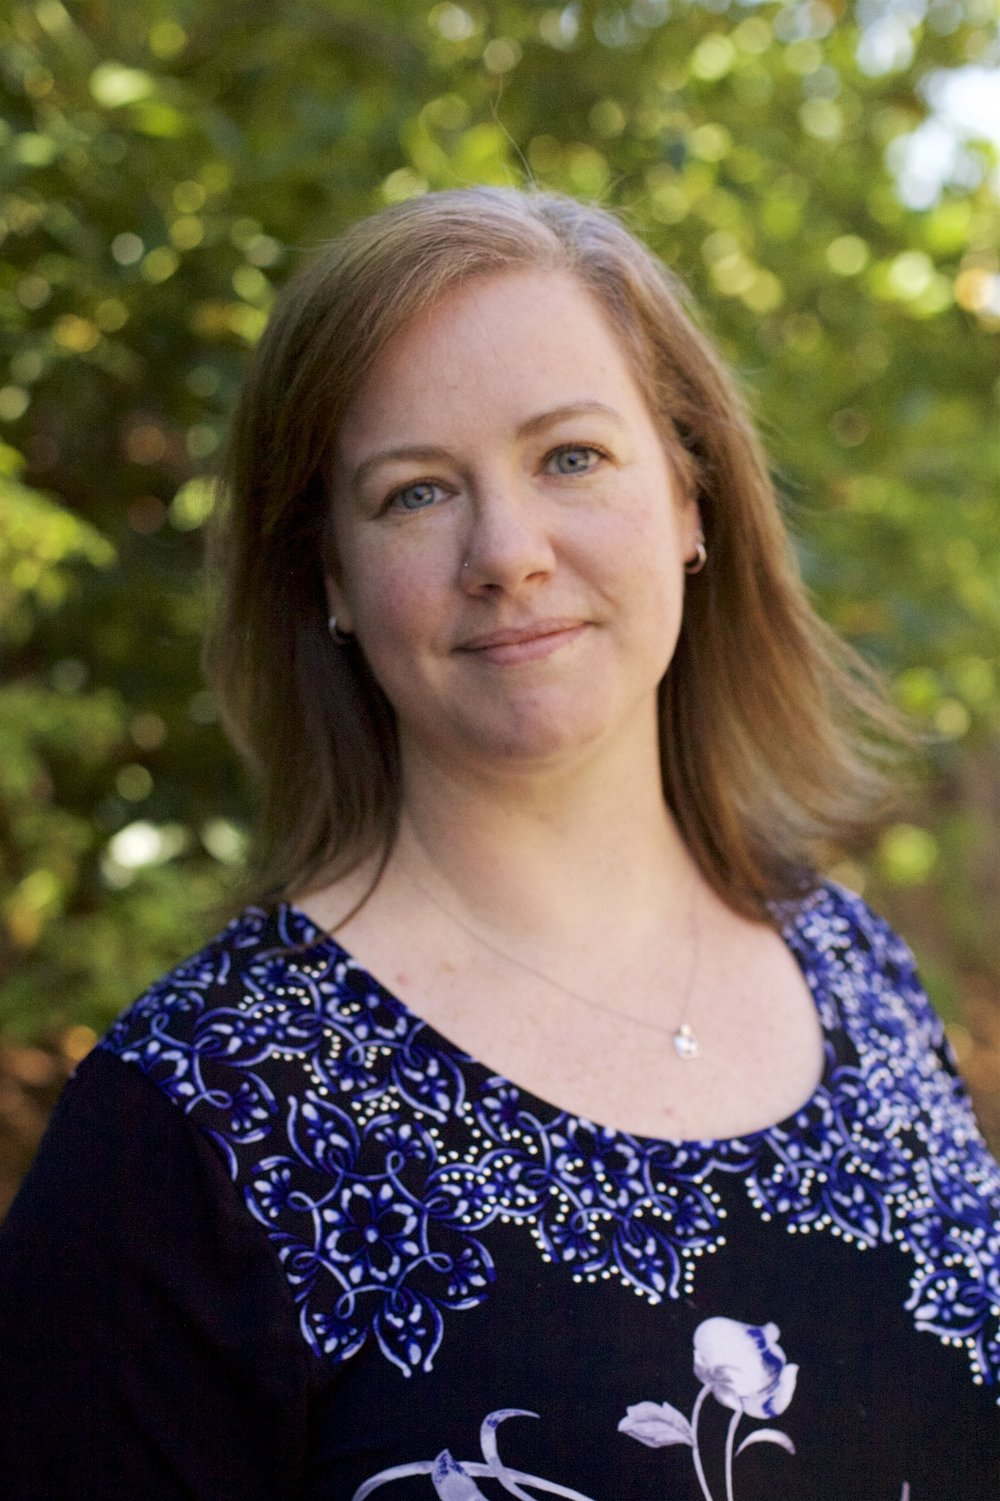 sarah allen, psyd, licensed psychologist ∙ Adults (Ages 16+) ∙ Couples Therapy ∙ Anxiety ∙ Depression ∙ Trauma/PTSD ∙ DBT ∙ LGBTQ Issues ∙ Relational Therapy Style ∙ Life Transitions ∙ Self-Esteem/ Confidence ∙ Family of Origin